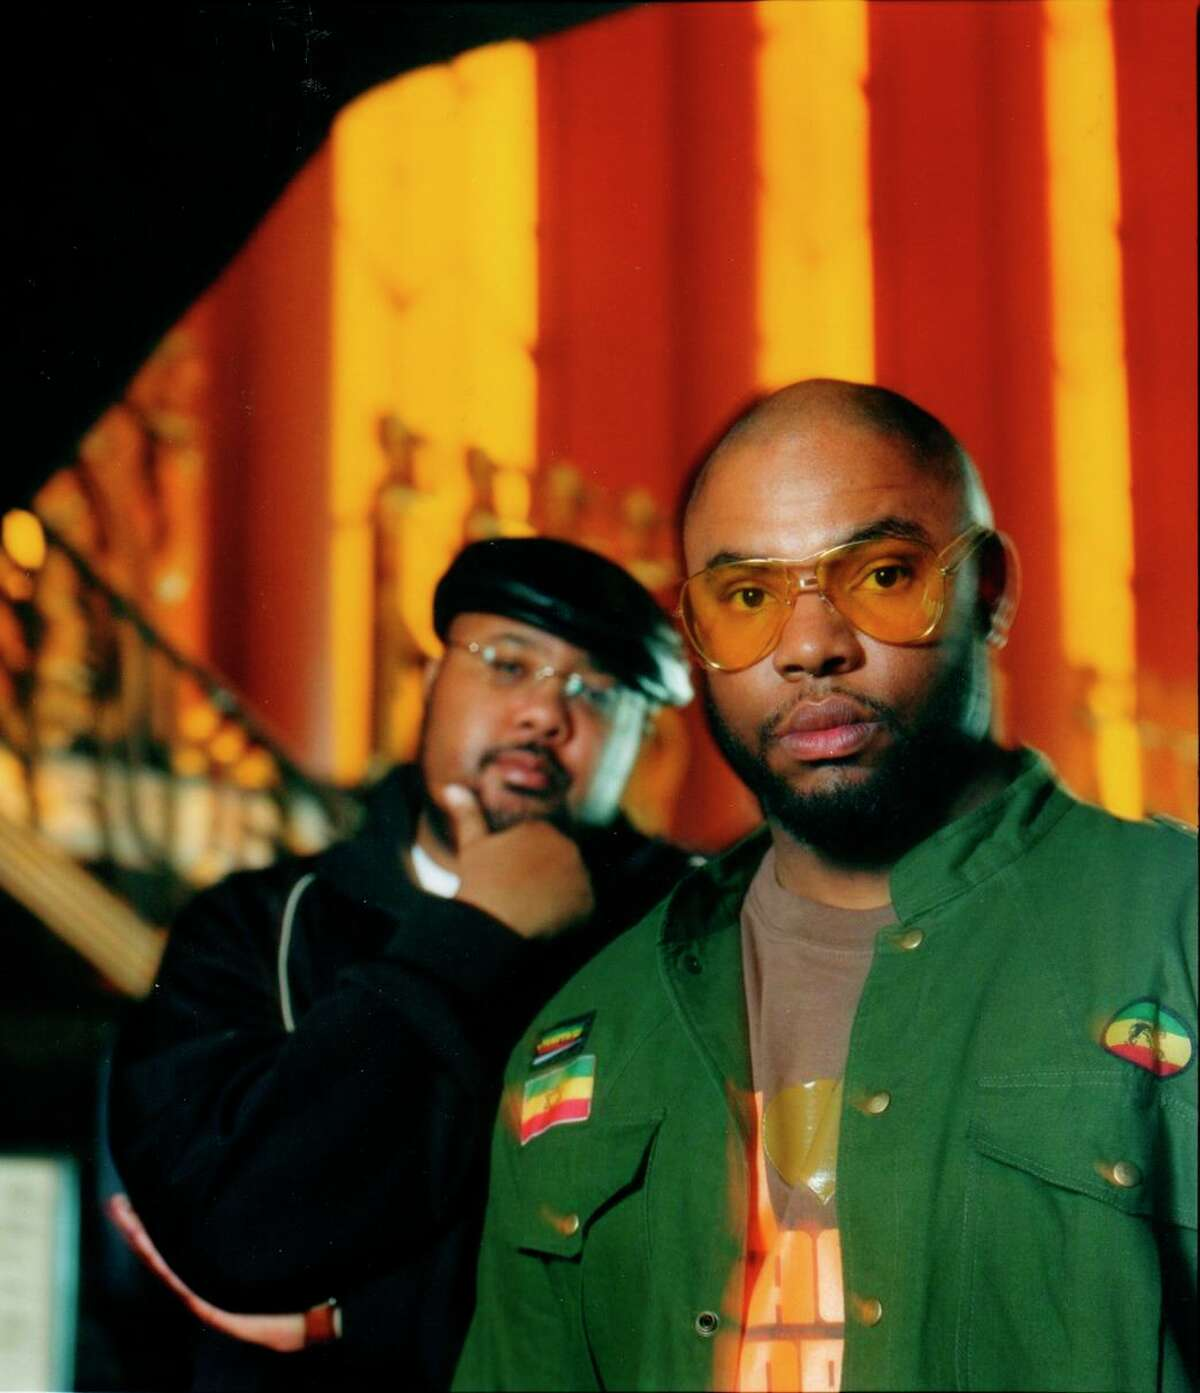 Timothy J. Parker, a.k.a Gift of Gab (left), and Chief Xcel performed as Blackalicious. Parker was known for his verbal acrobatics.